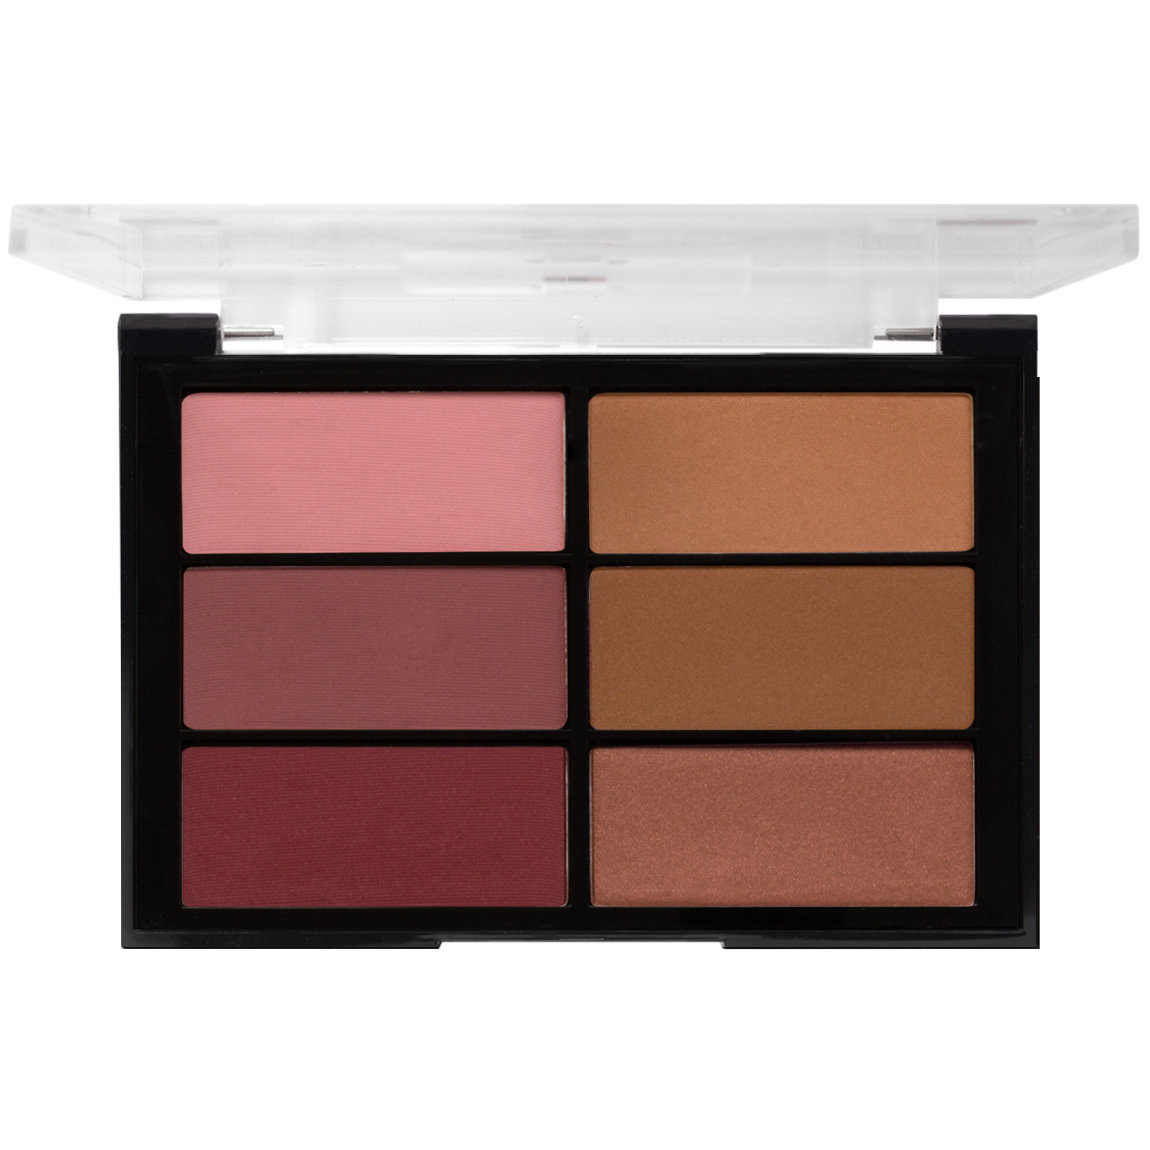 Viseart Blush Palette 1 Plum Bronze product swatch.